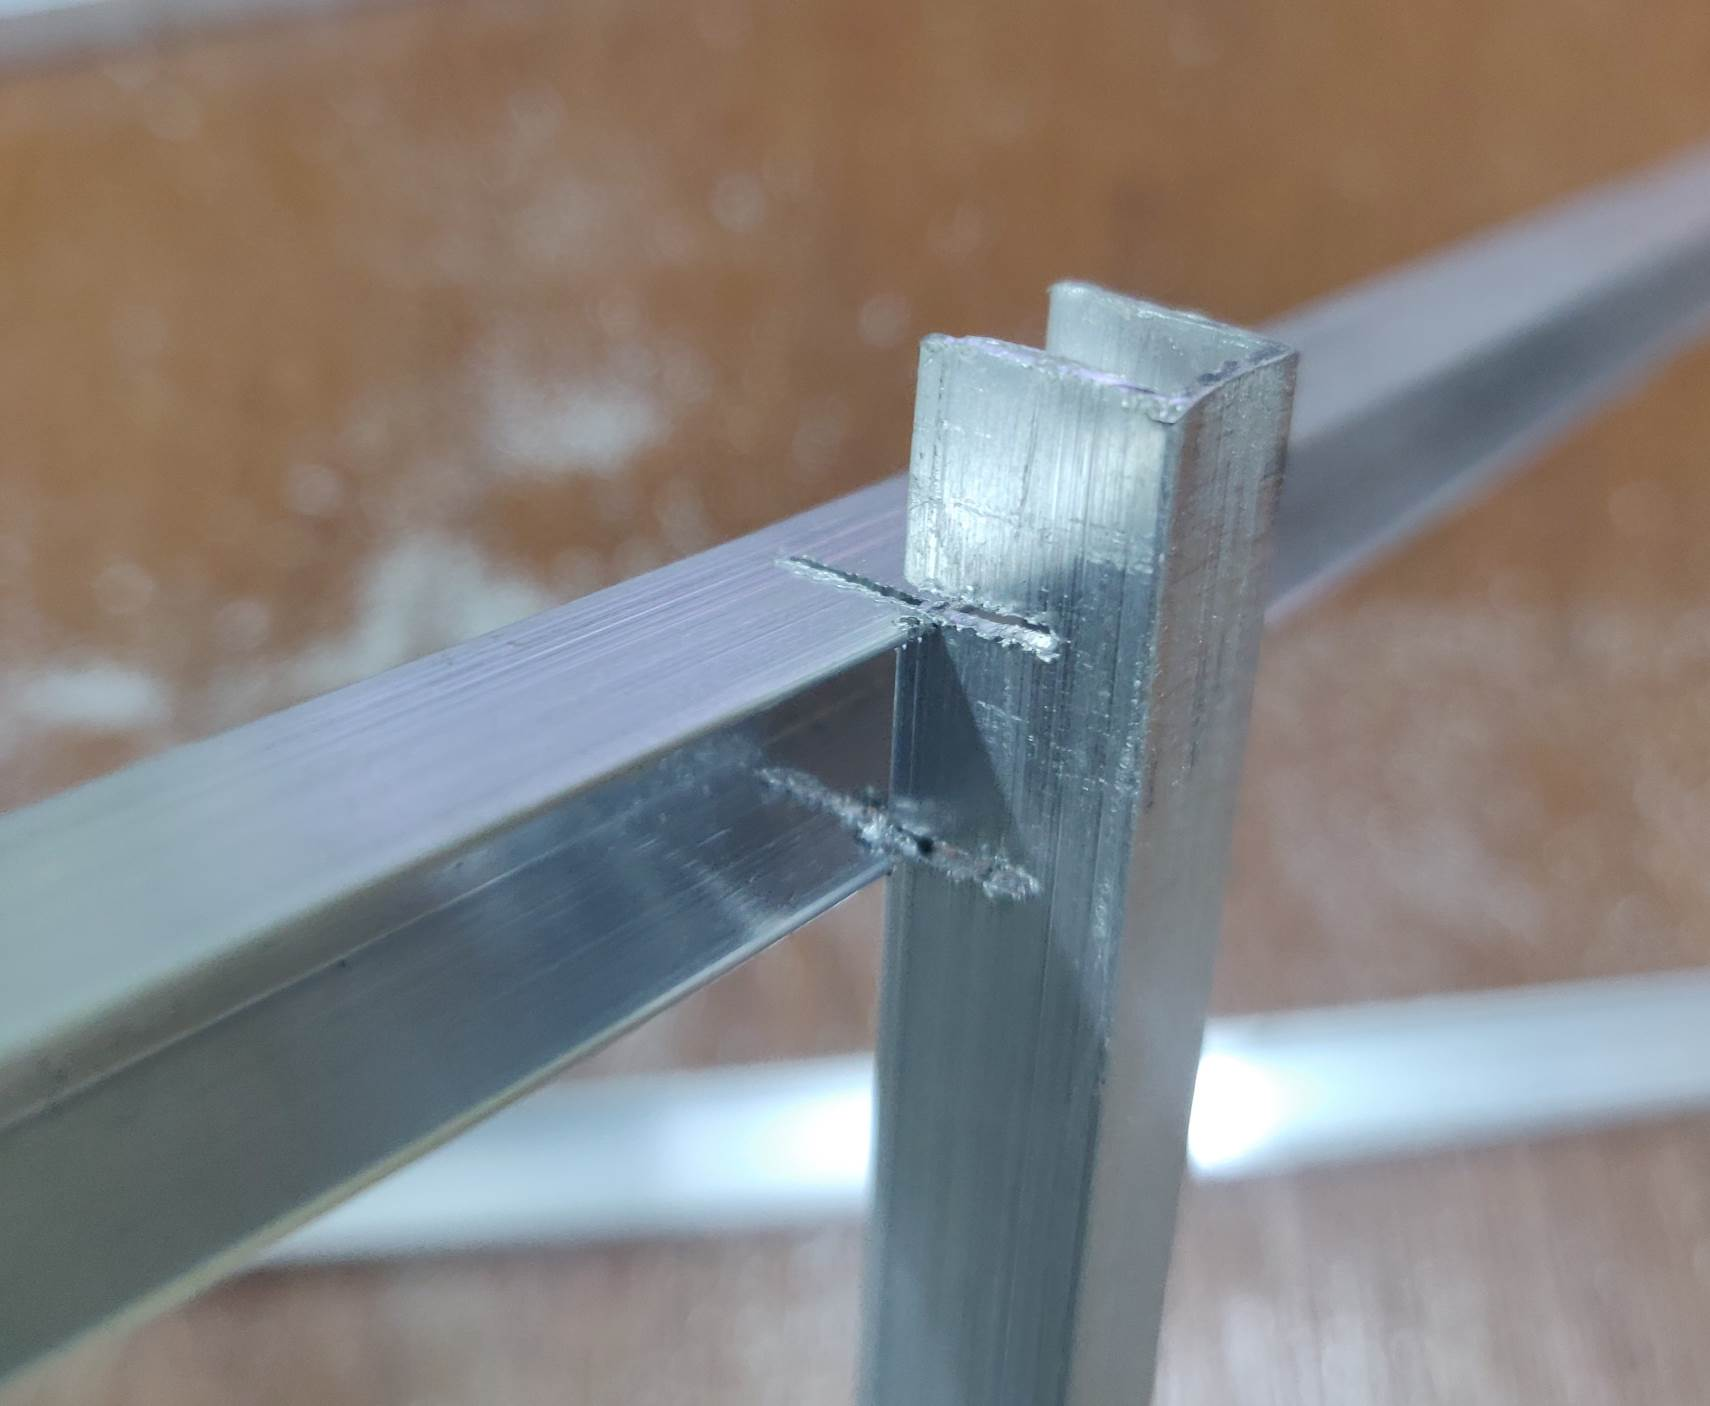 Interlocking Aluminium U Channels to for a Joint